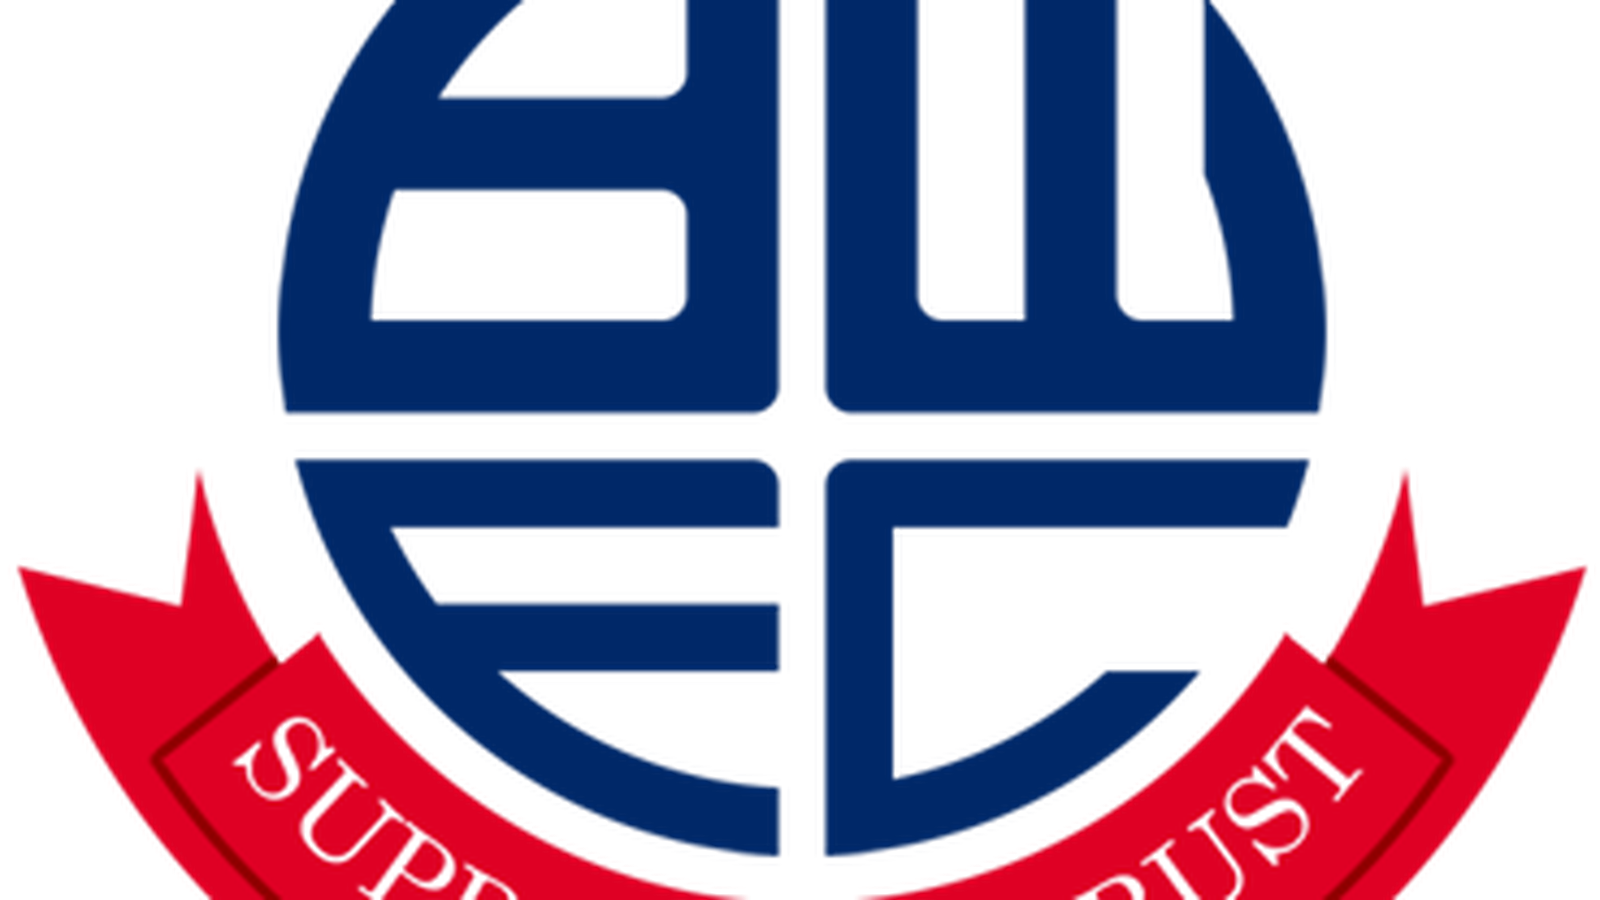 Bwfc-supporters-trust-coloured-logo.0